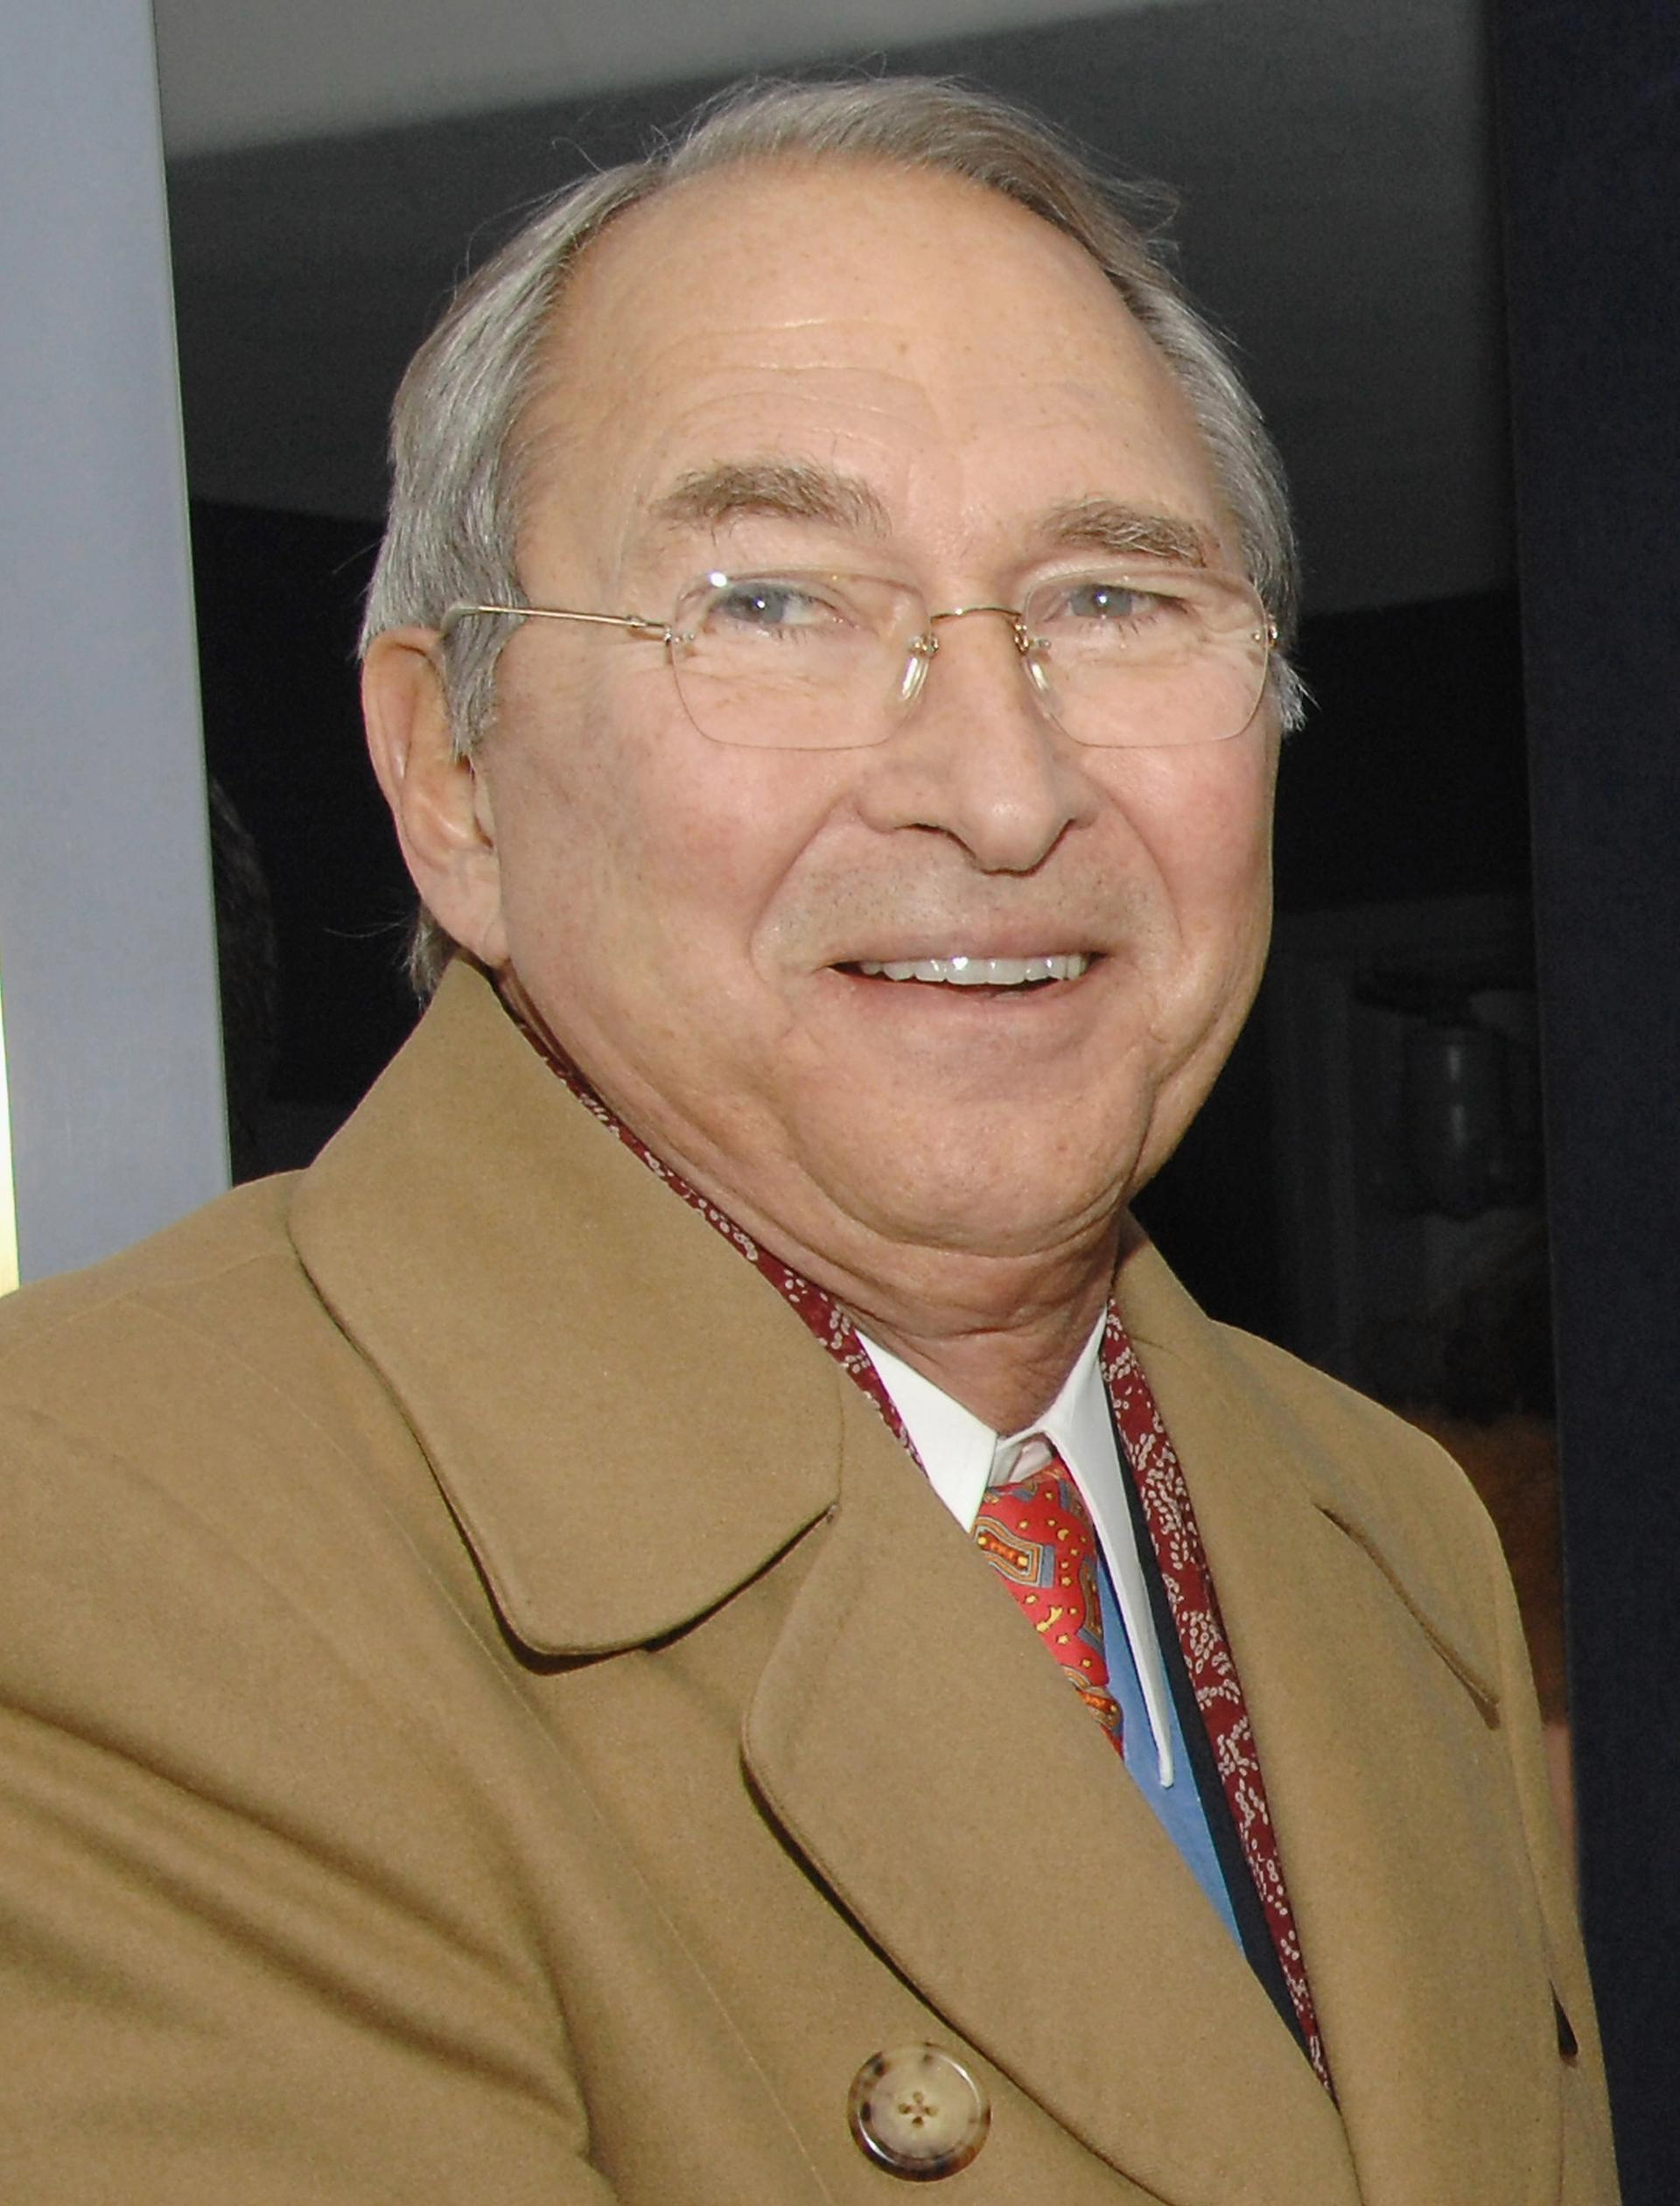 Sheldon Solow died aged 92 Associated Press